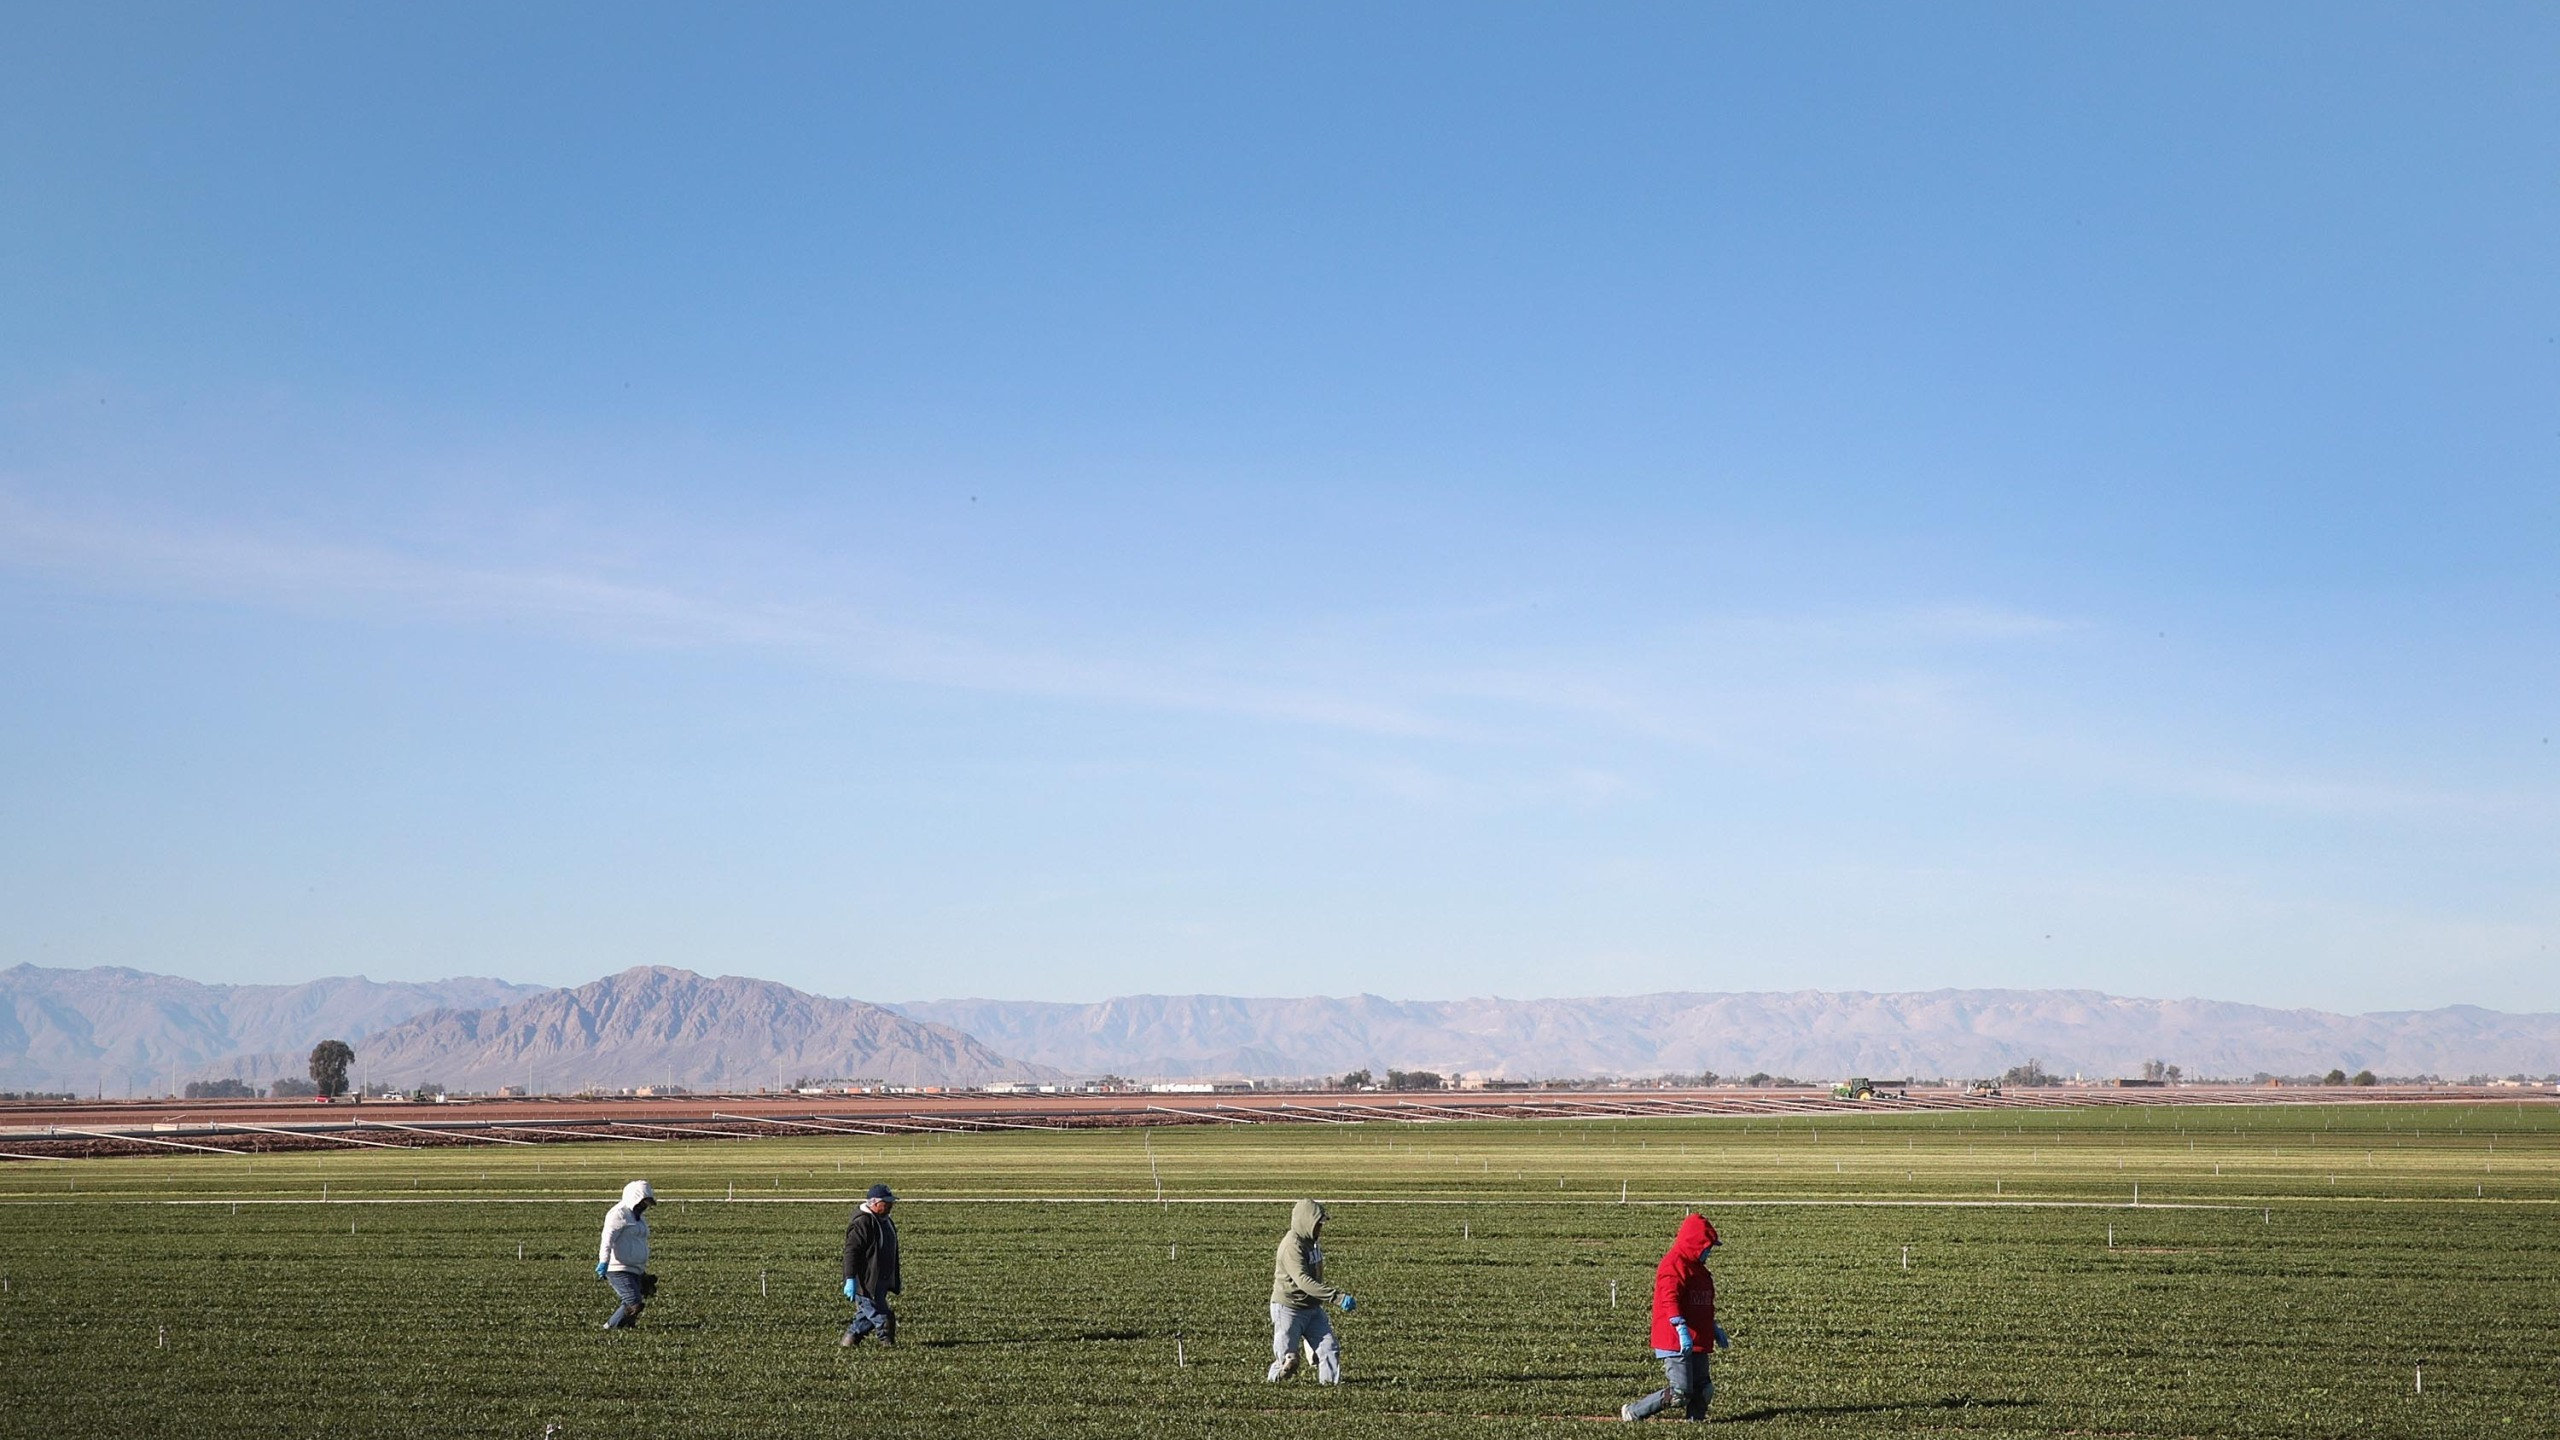 Farmworkers pull weeds in a field of spinach growing near the U.S.-Mexico border on Jan. 25, 2019 near El Centro, California. (Scott Olson/Getty Images)